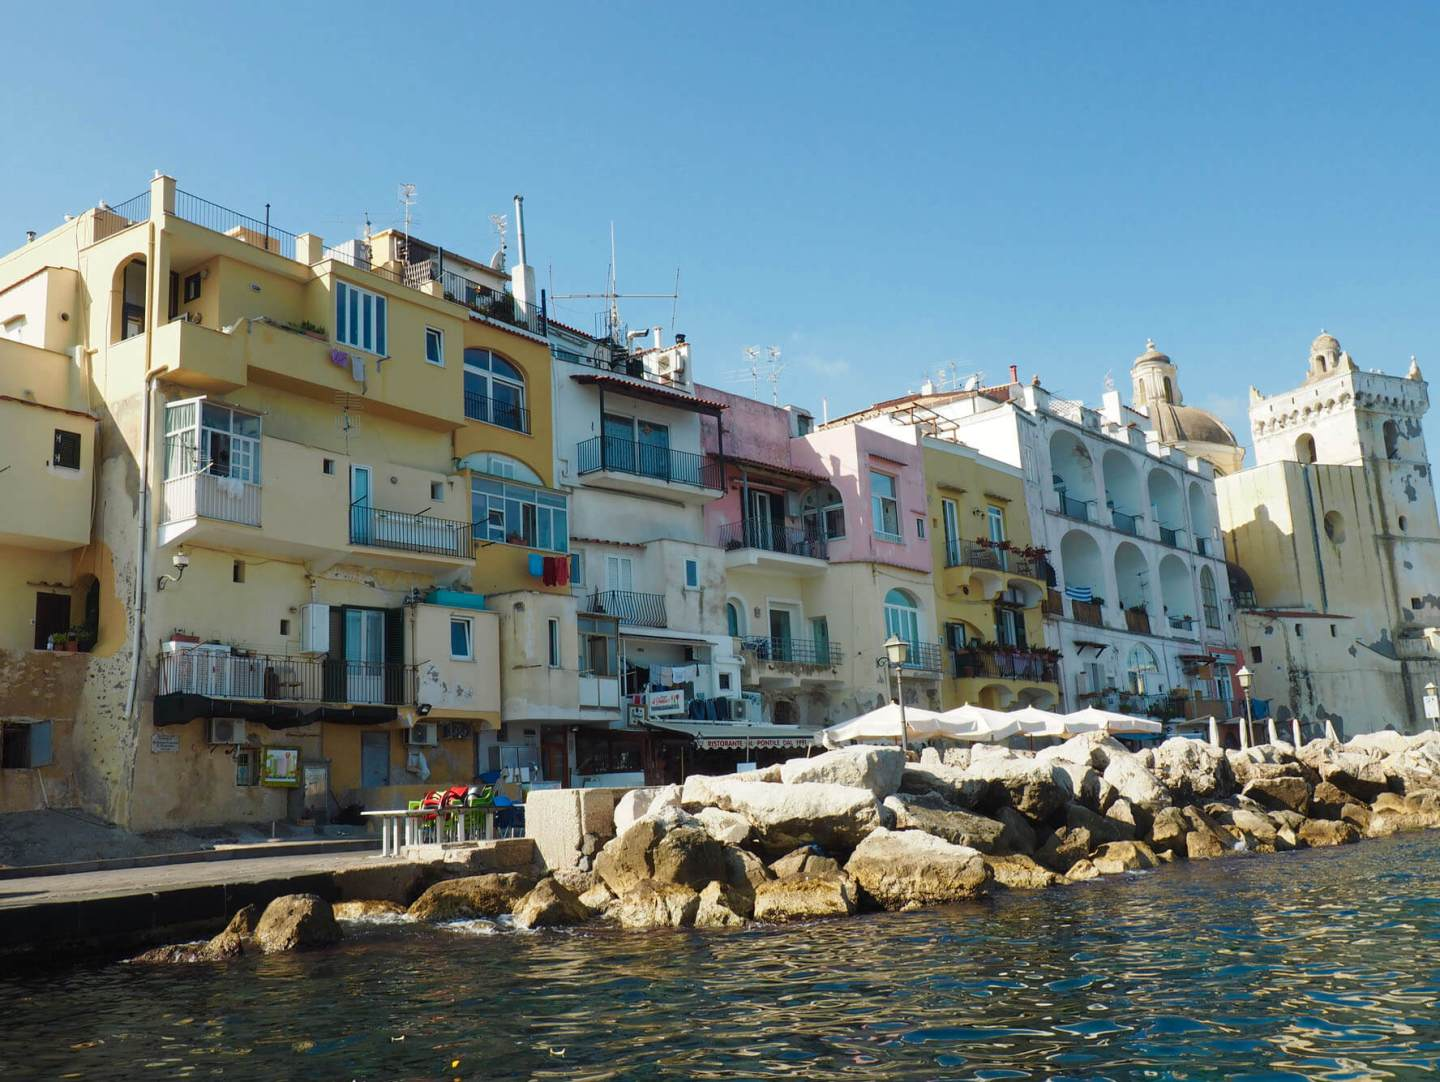 My First Impressions On The Island Of Ischia